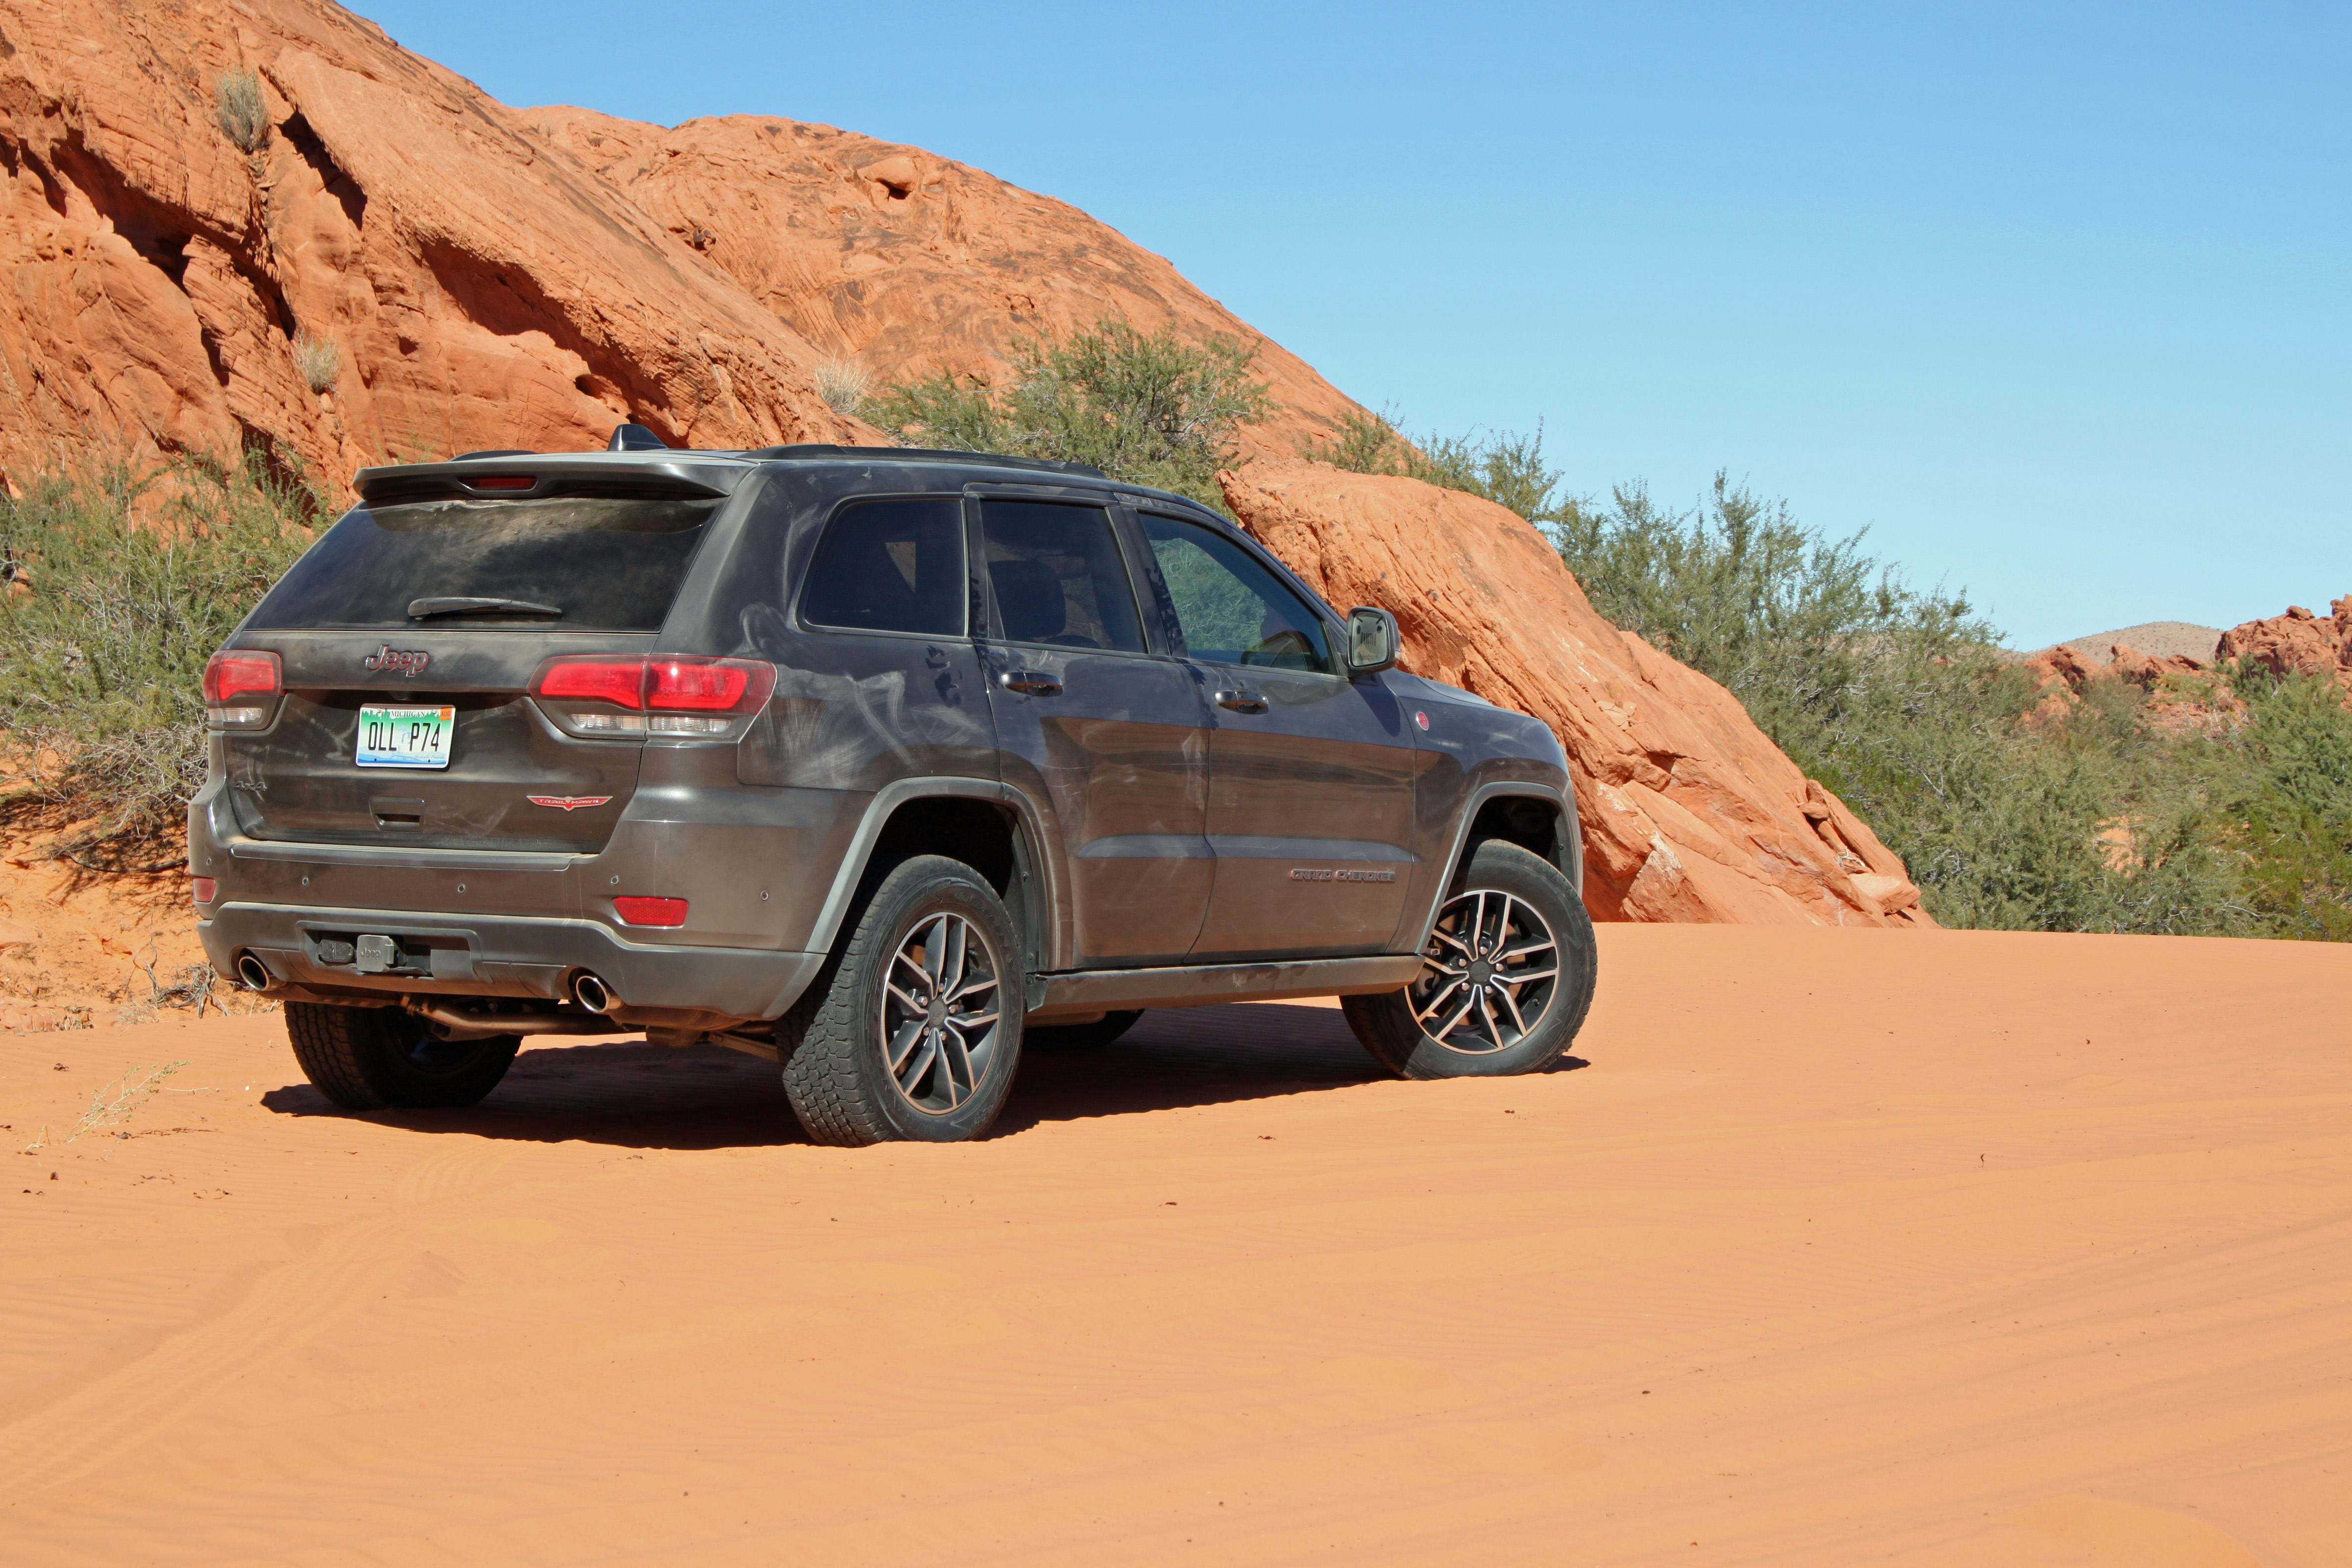 2019 Jeep Grand Cherokee Trailhawk Review | Off-Road.com